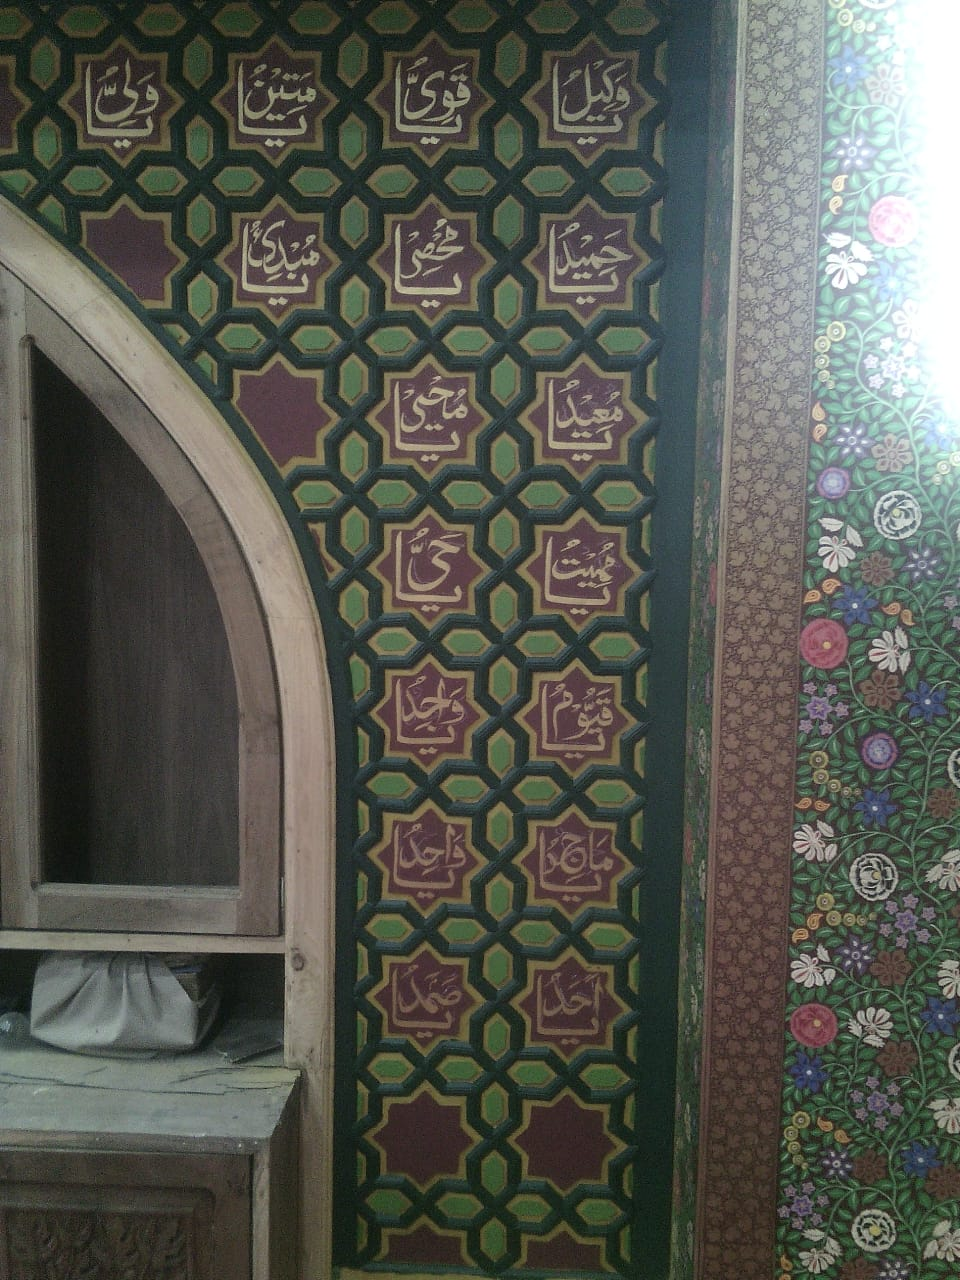 wall-calligraphics, Arabic calligraphy, mosque art, shrine, mughal